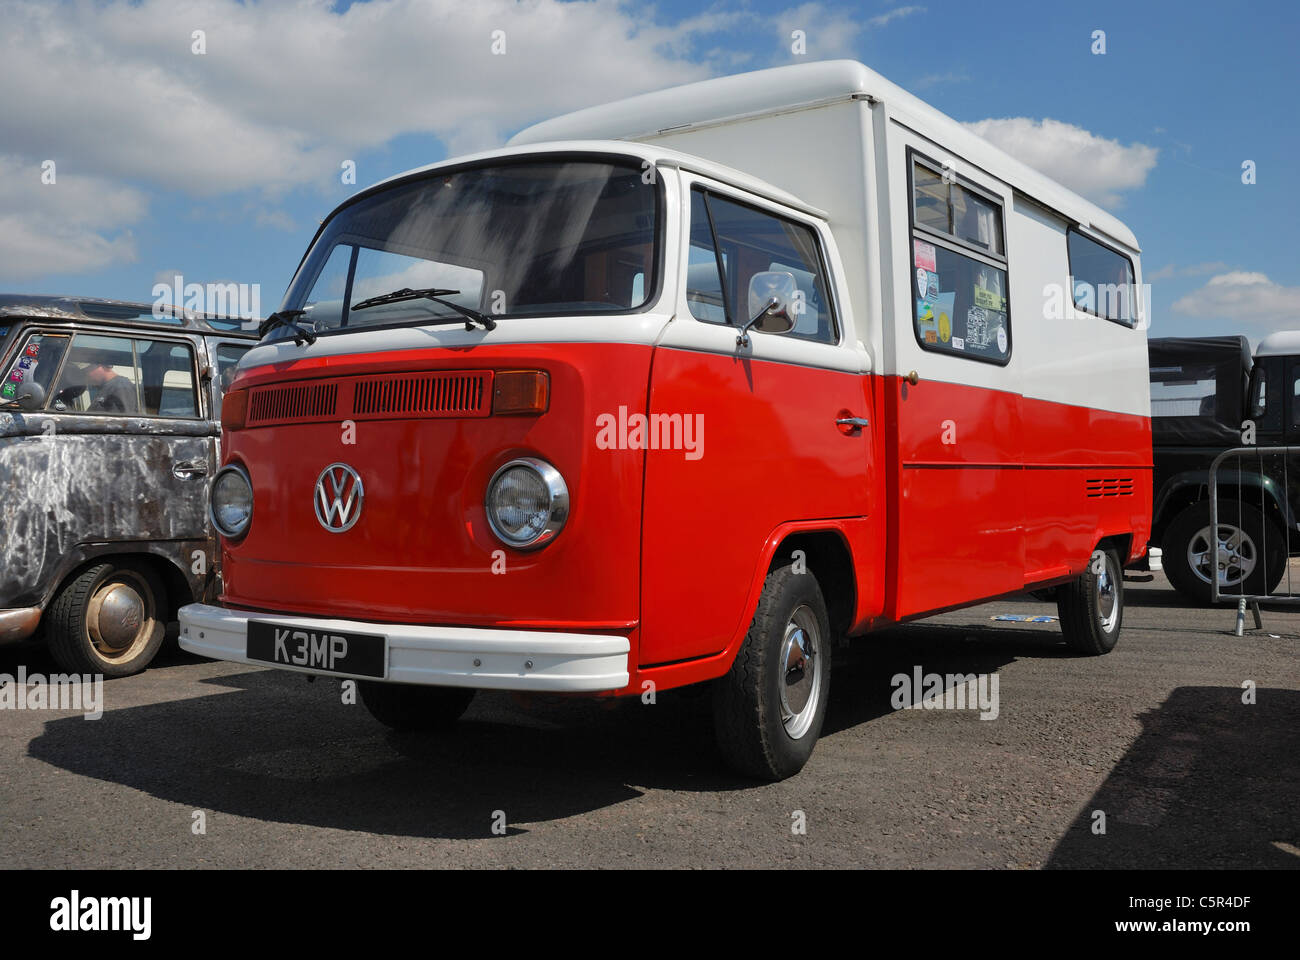 An 'early bay' VW bus. Santa Pod, Northants, England. - Stock Image